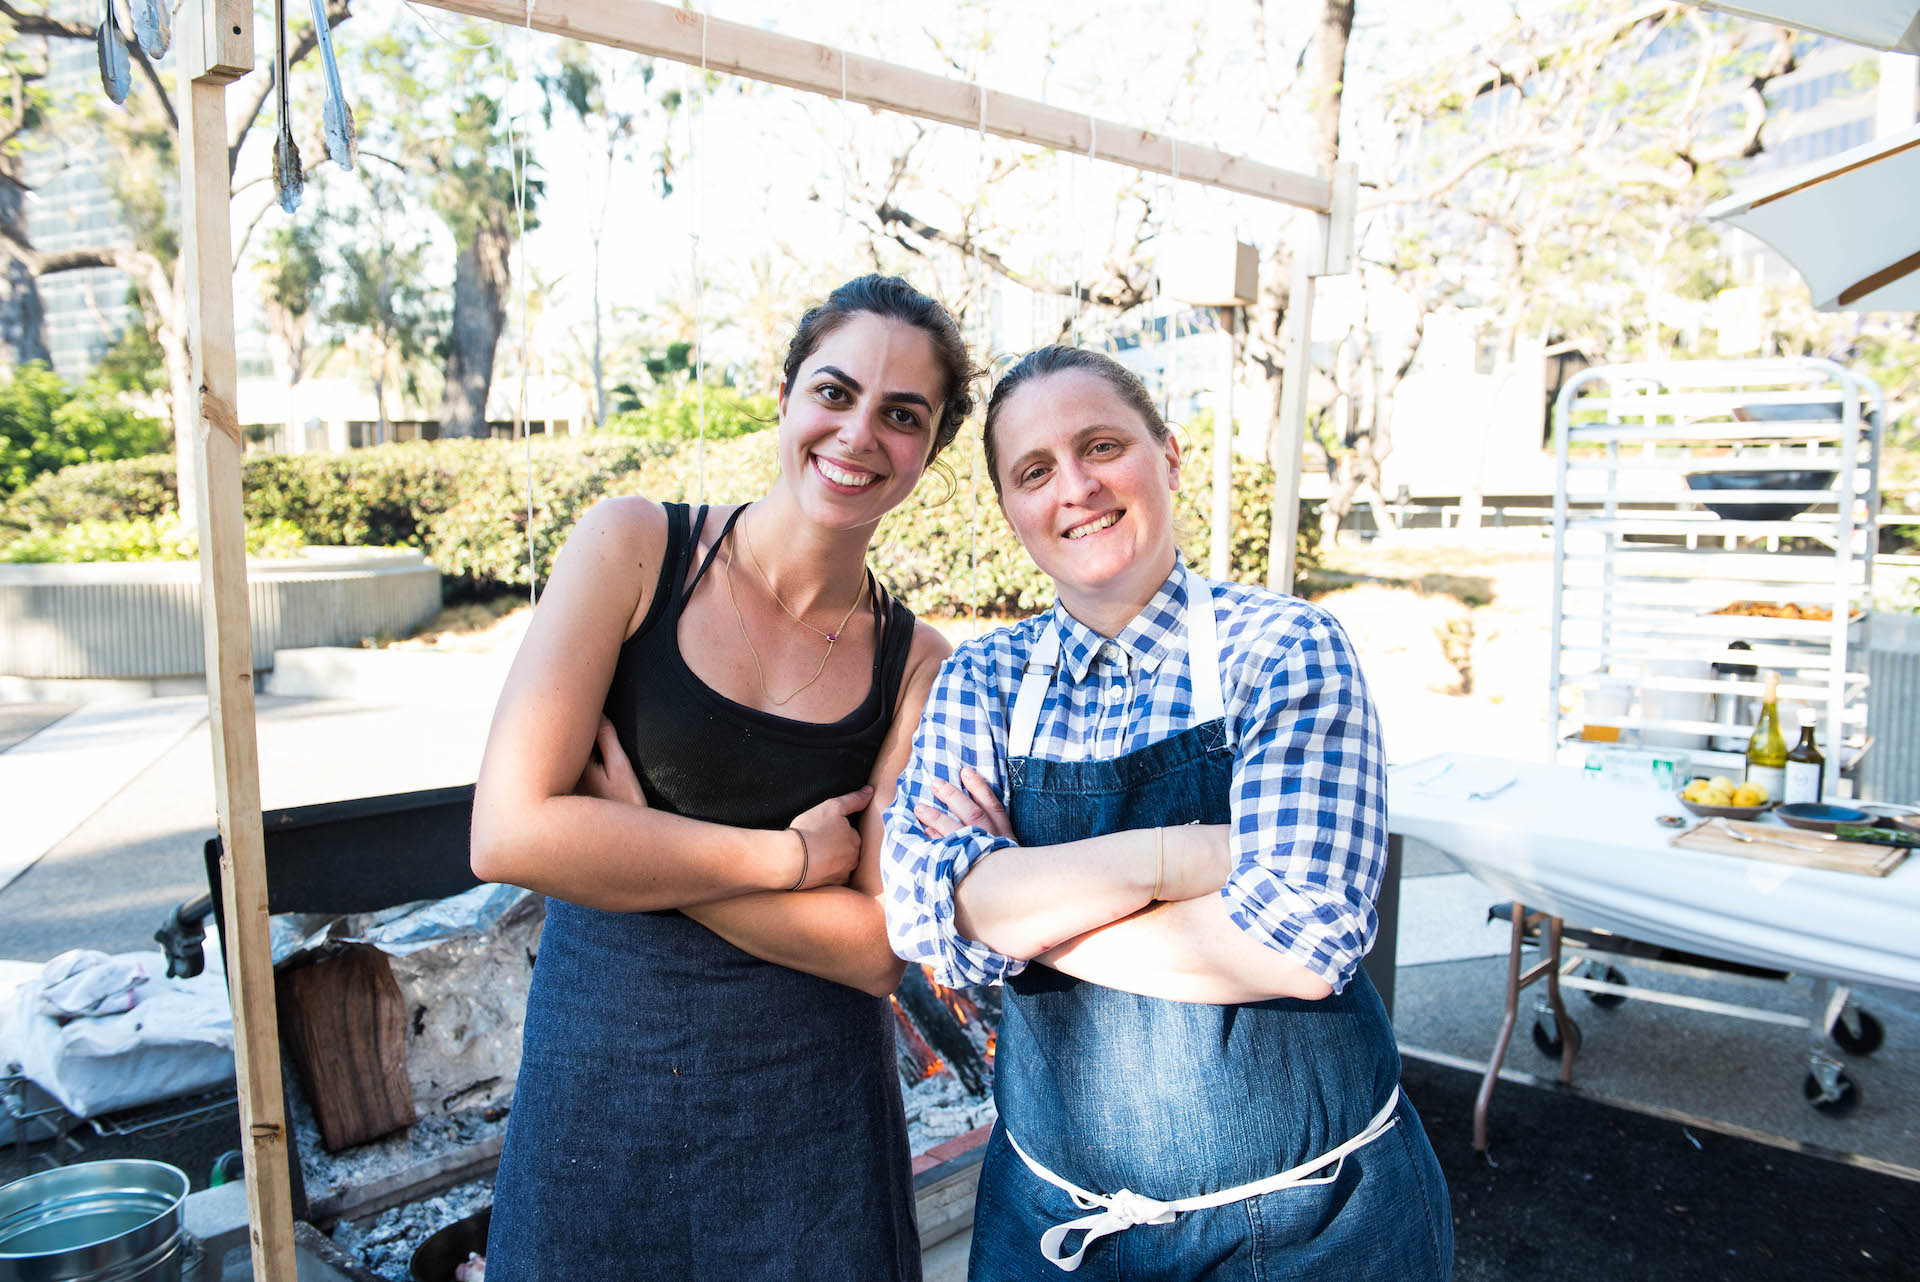 April Bloomfield (right), chef and owner of the Spotted Pig, the Breslin Bar and Dining Room, the John Dory Oyster Bar, Salvation Taco, and Tosca. On her left is Debbie Michail, local L.A.butcher and April's sous chef for Beast Feast.